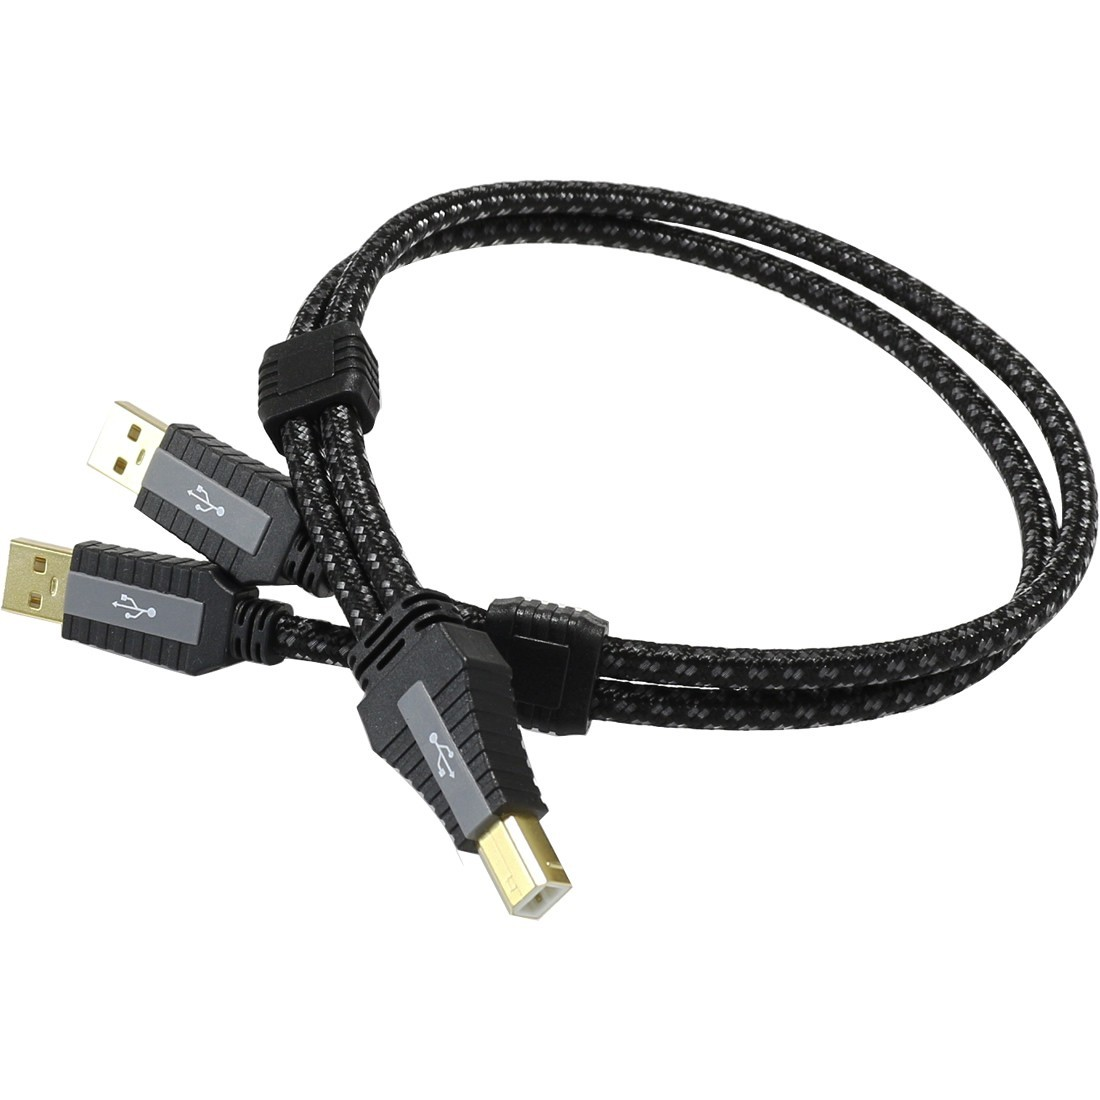 PANGEA PREMIER XL Cable USB-A Male / USB-B Male 2.0 Gold plated Cardas Copper 0.5m